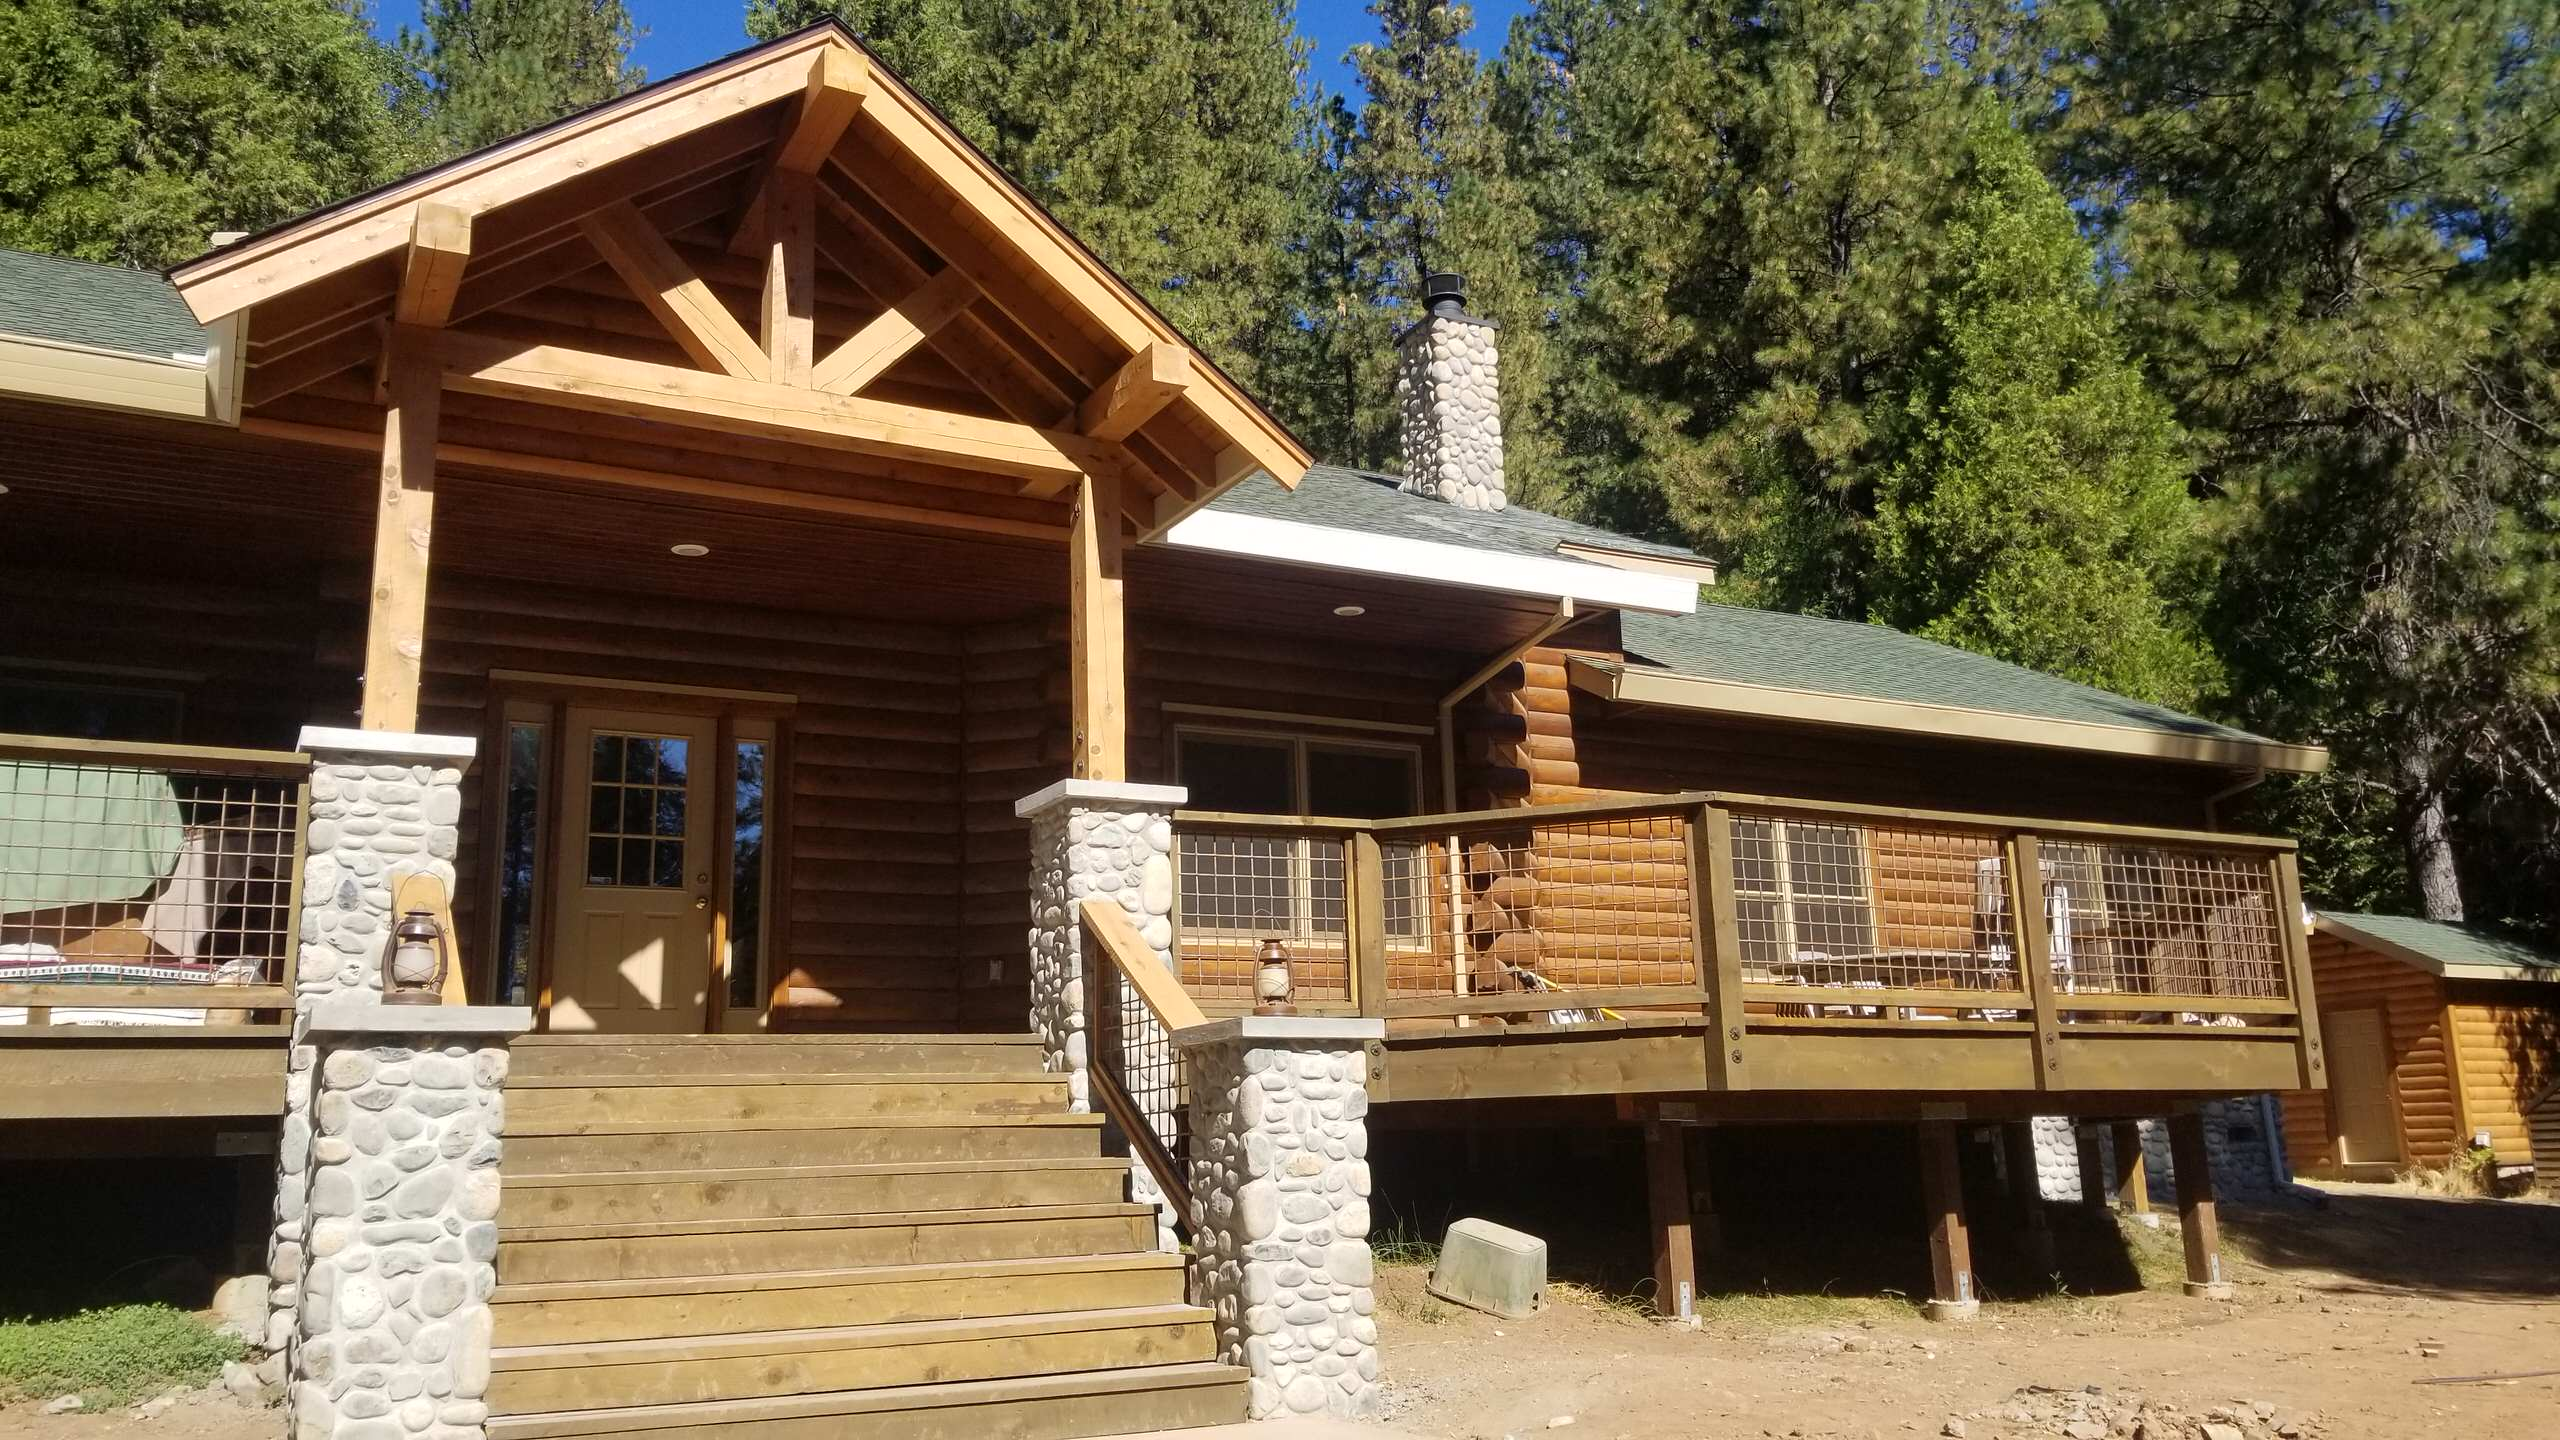 Complete remodel of log mountain home near Scotts Flat  Nevada City ,CA